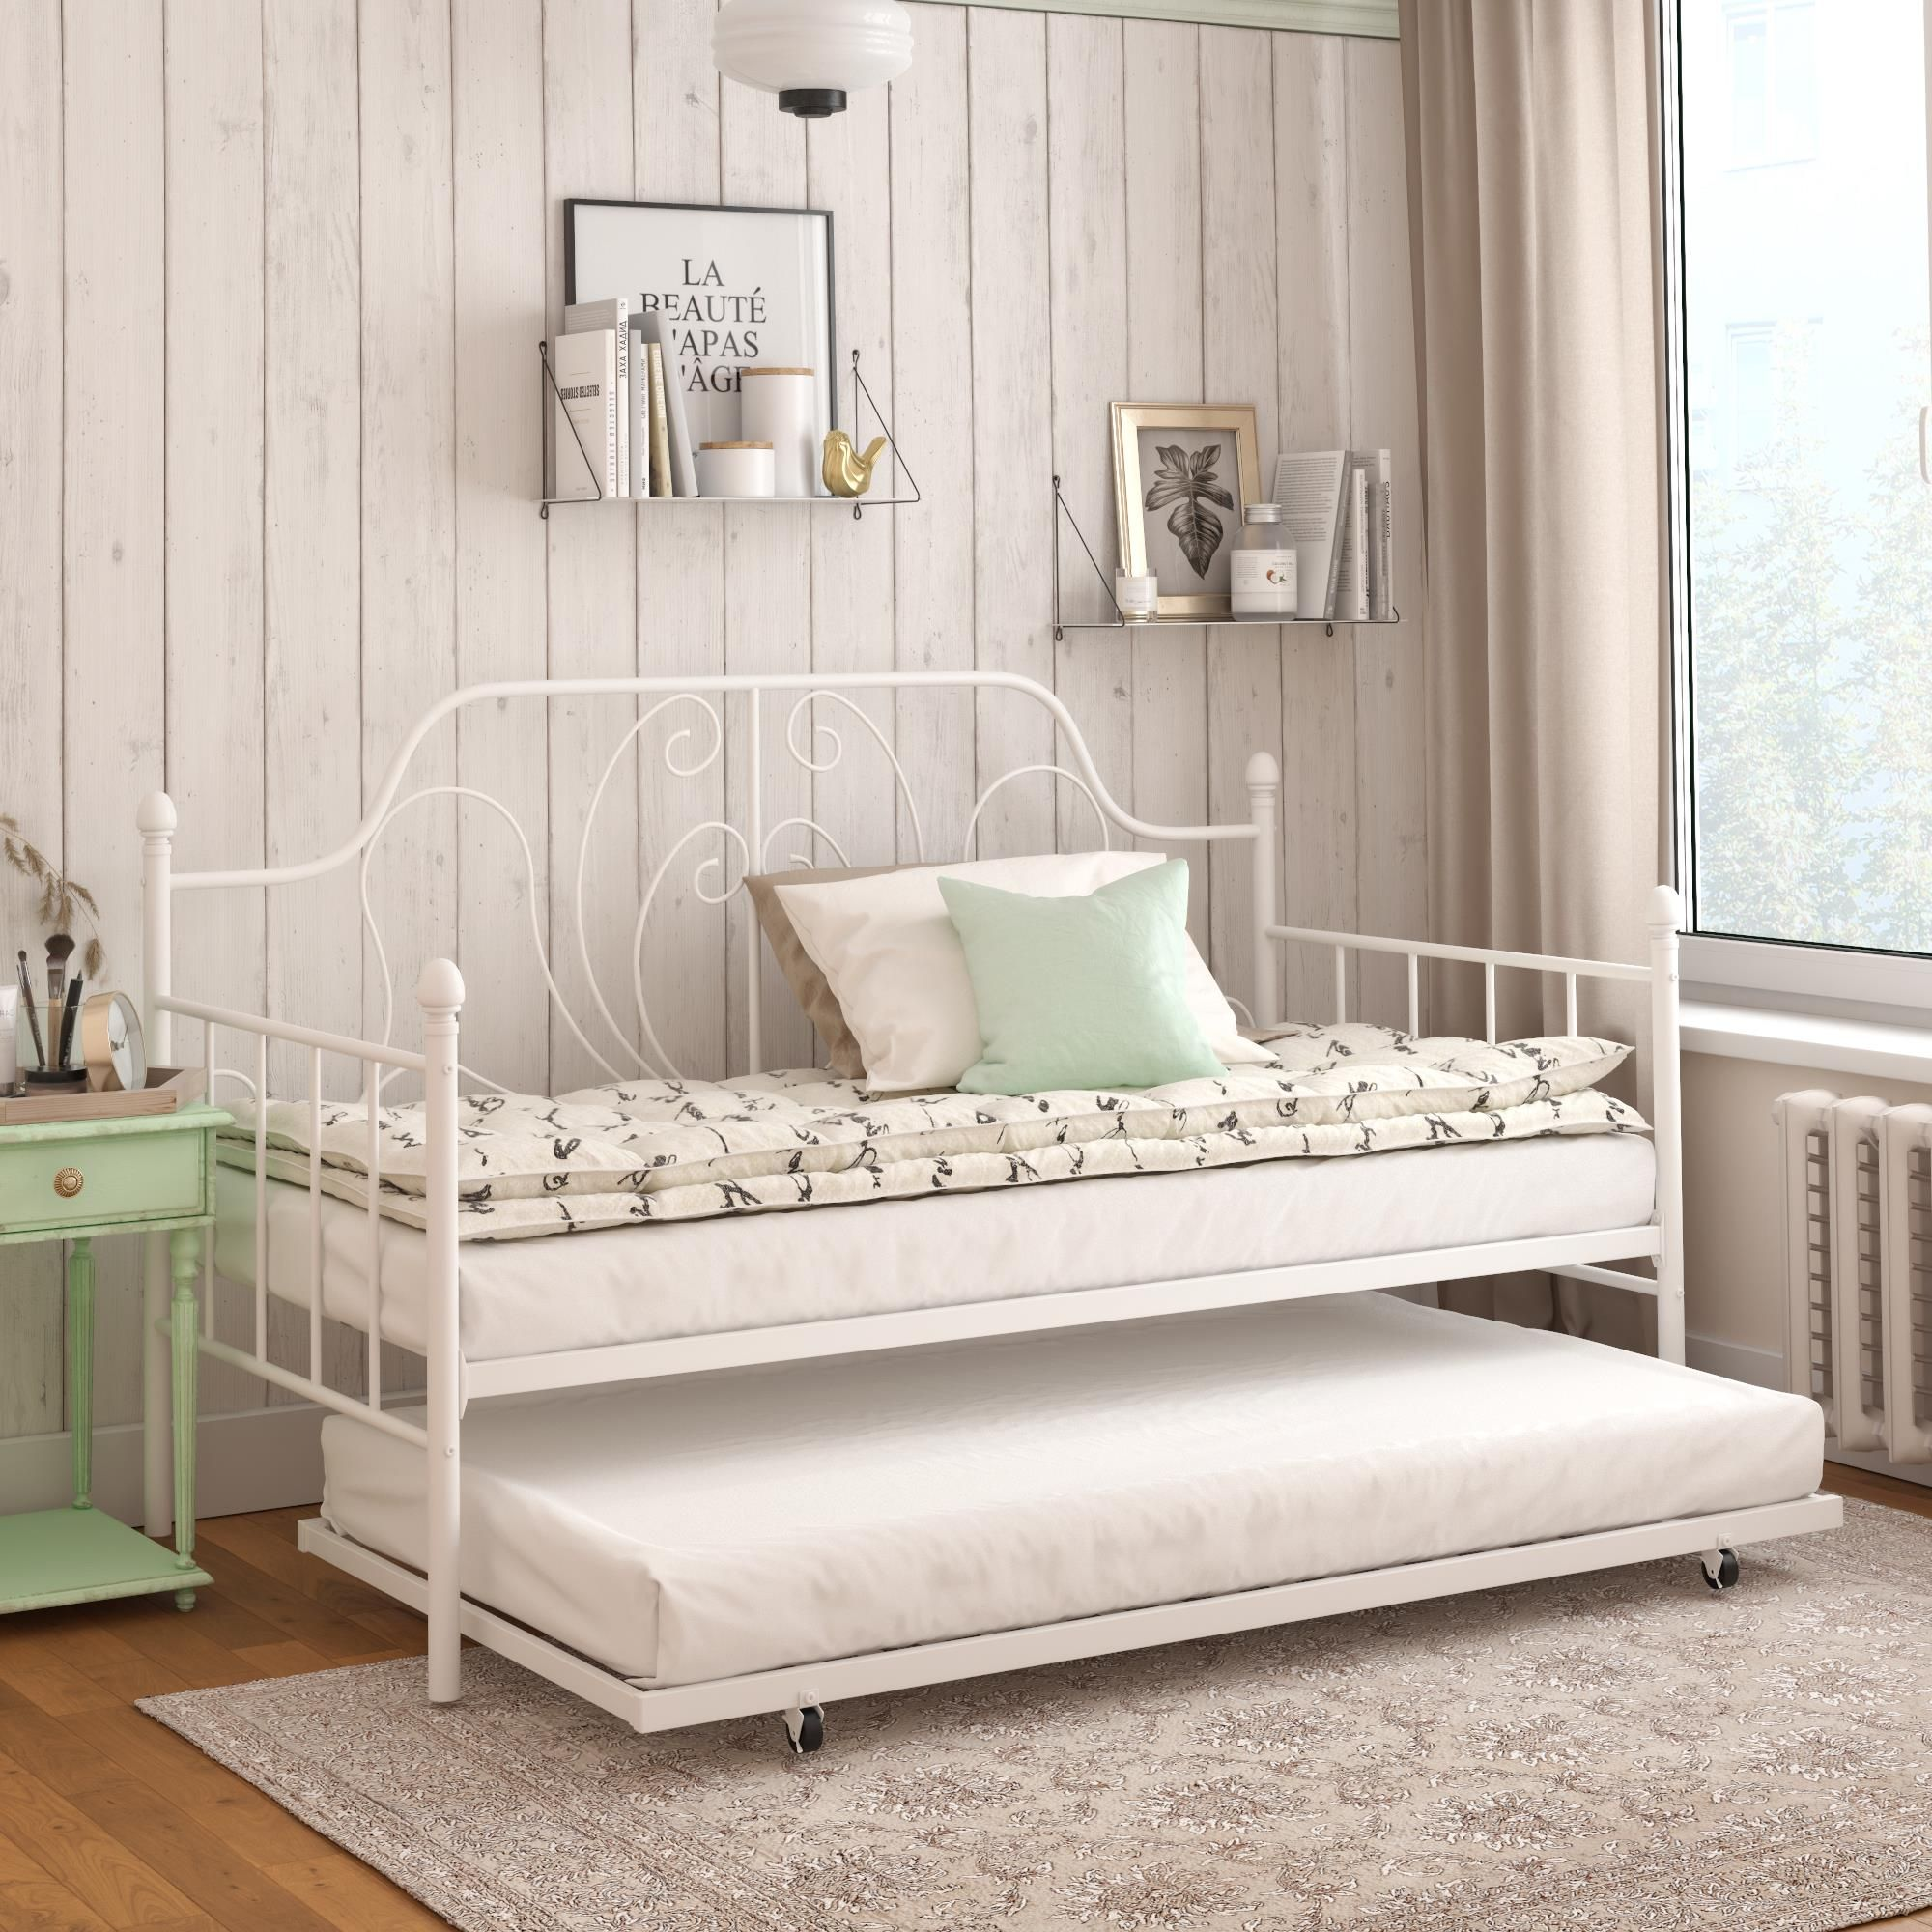 Dhp Ivorie Metal Daybed With Trundle Twin Twin Size Frame White